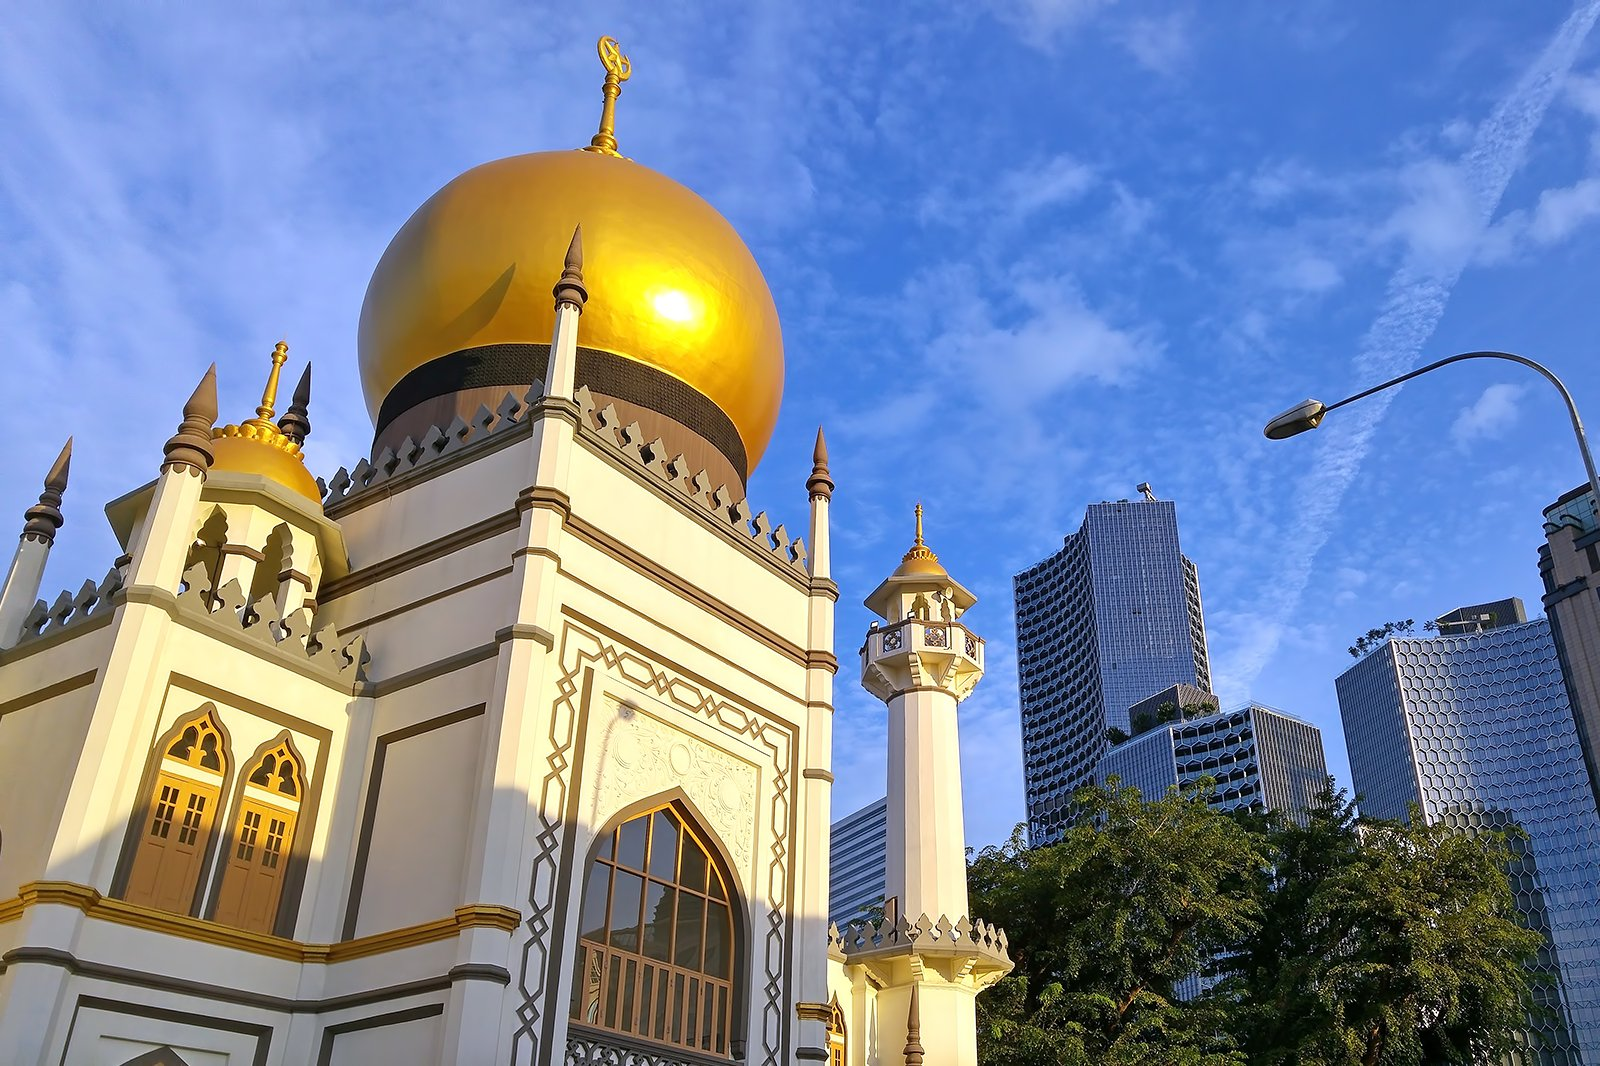 Sultan Mosque in Singapore - Historical Attraction in